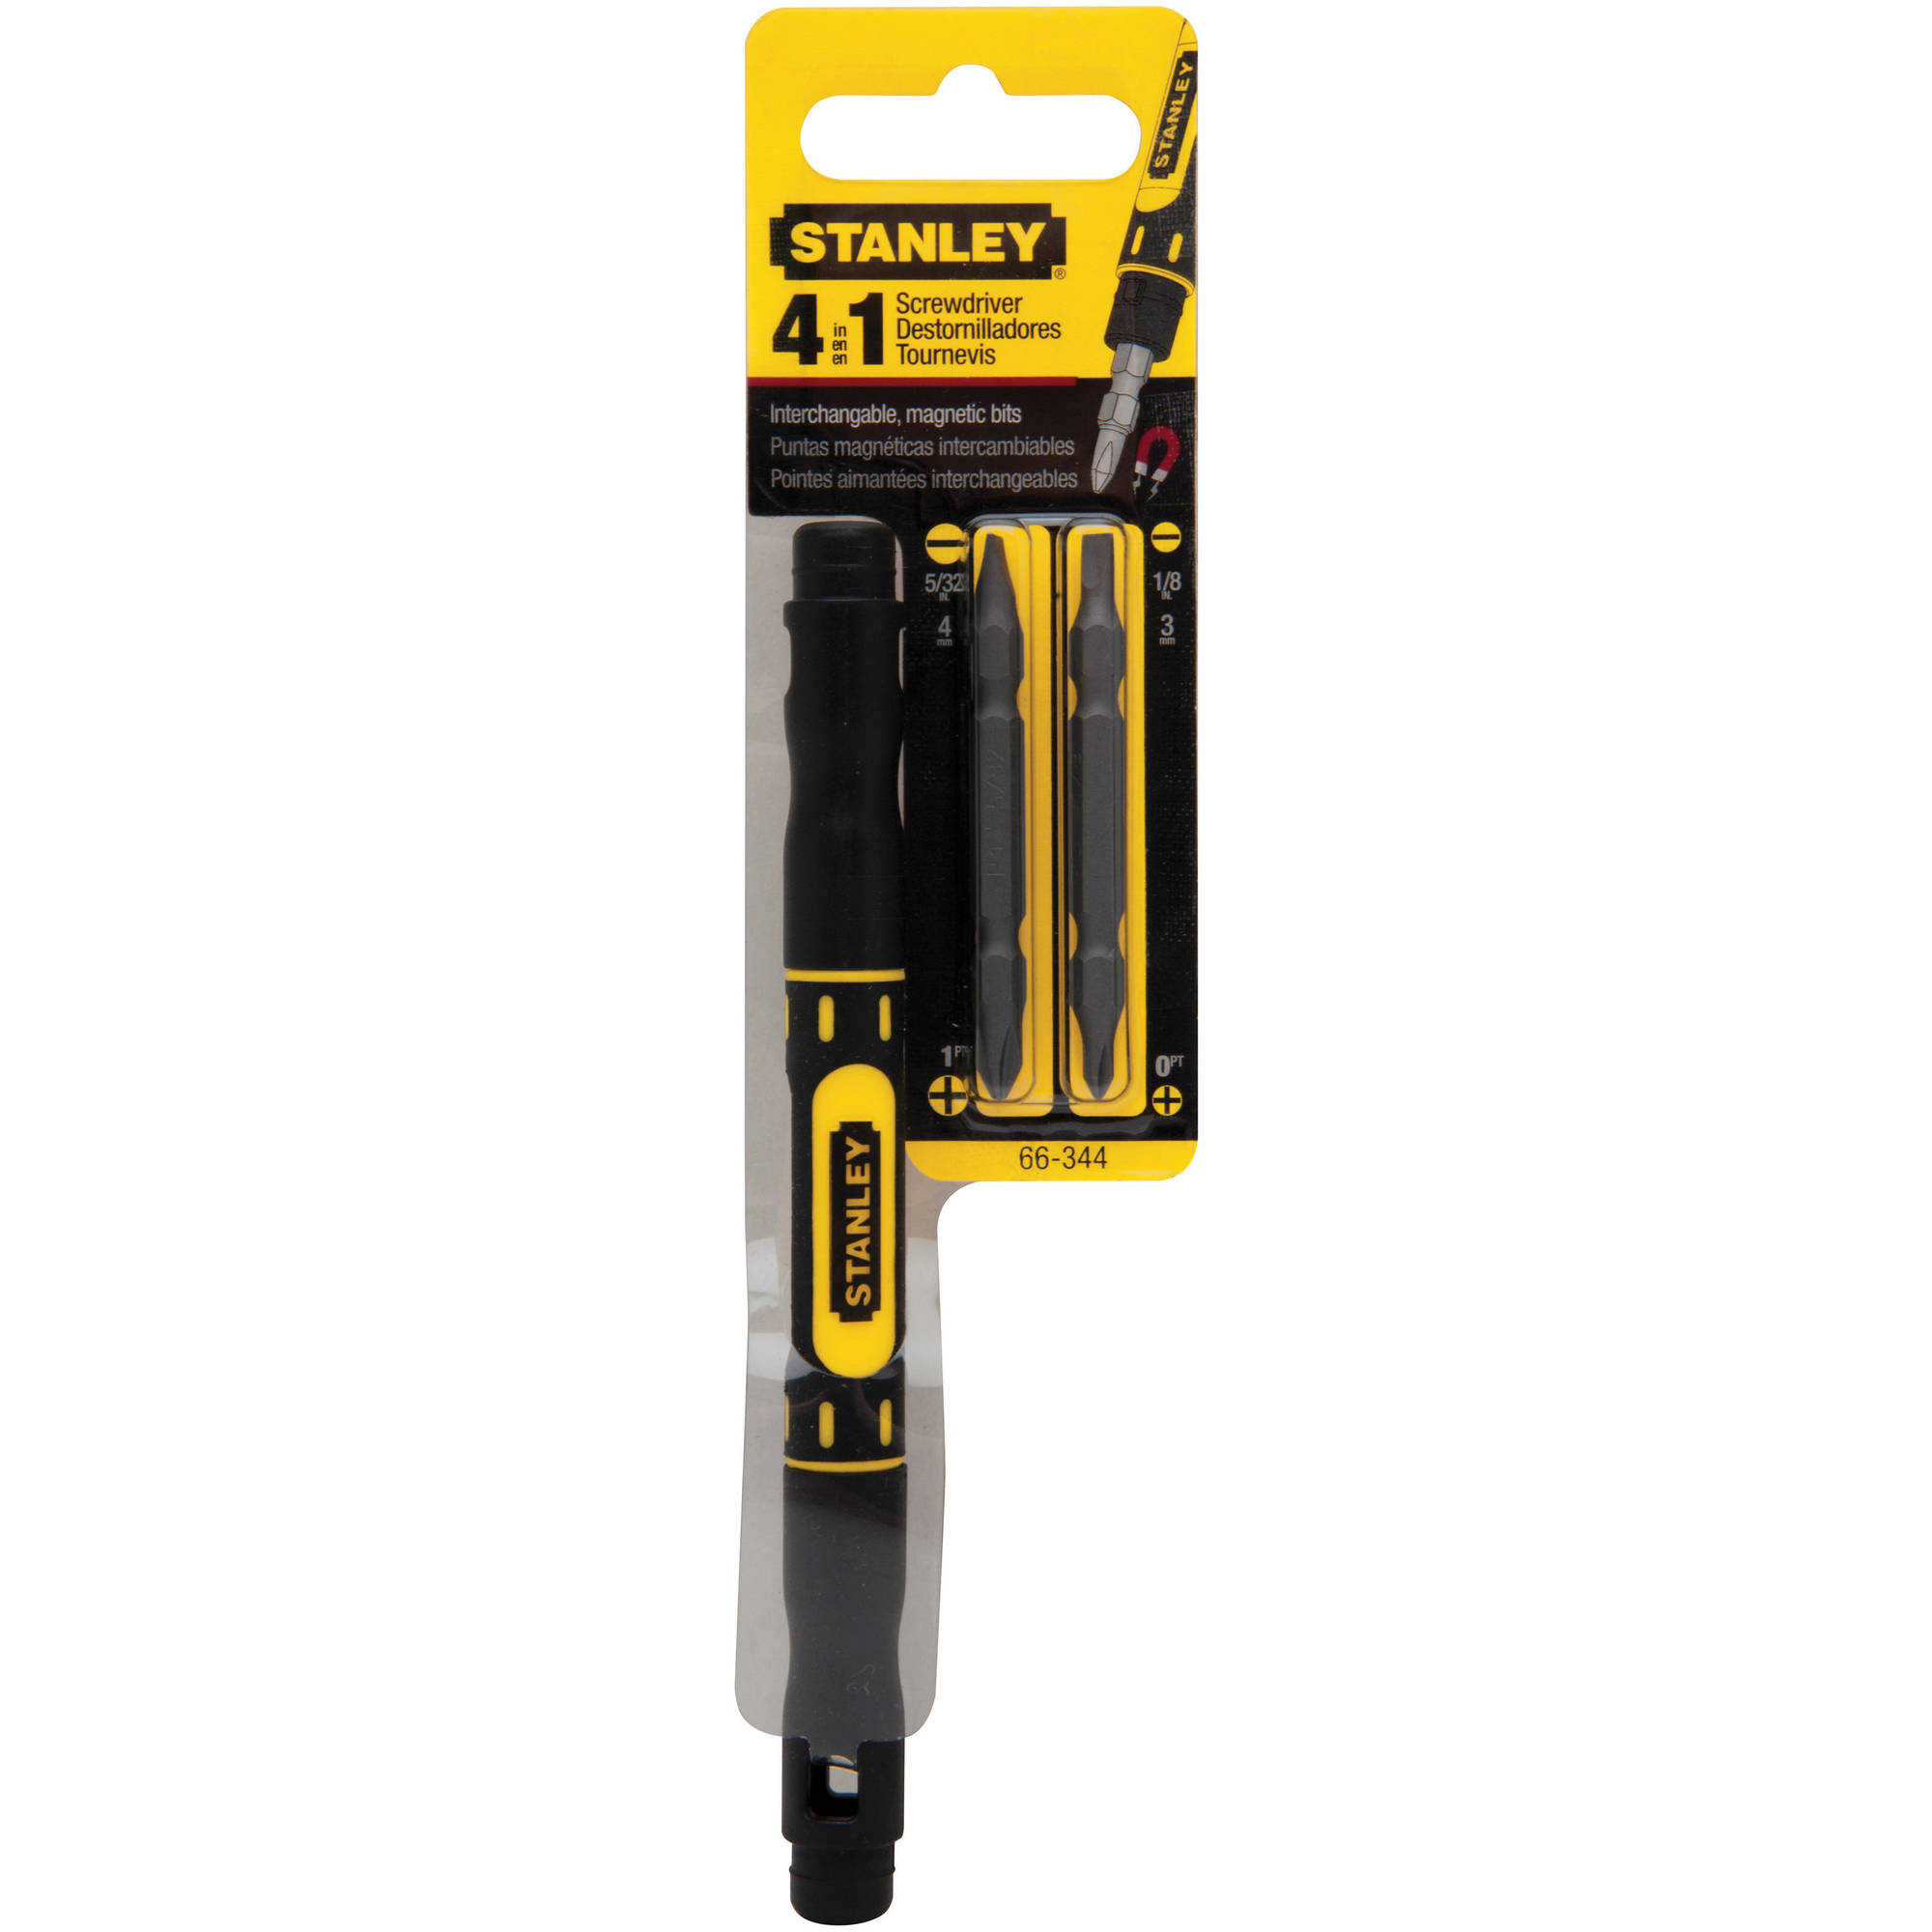 Stanley BOS66344 Four-In-One Pocket Screwdriver, Black